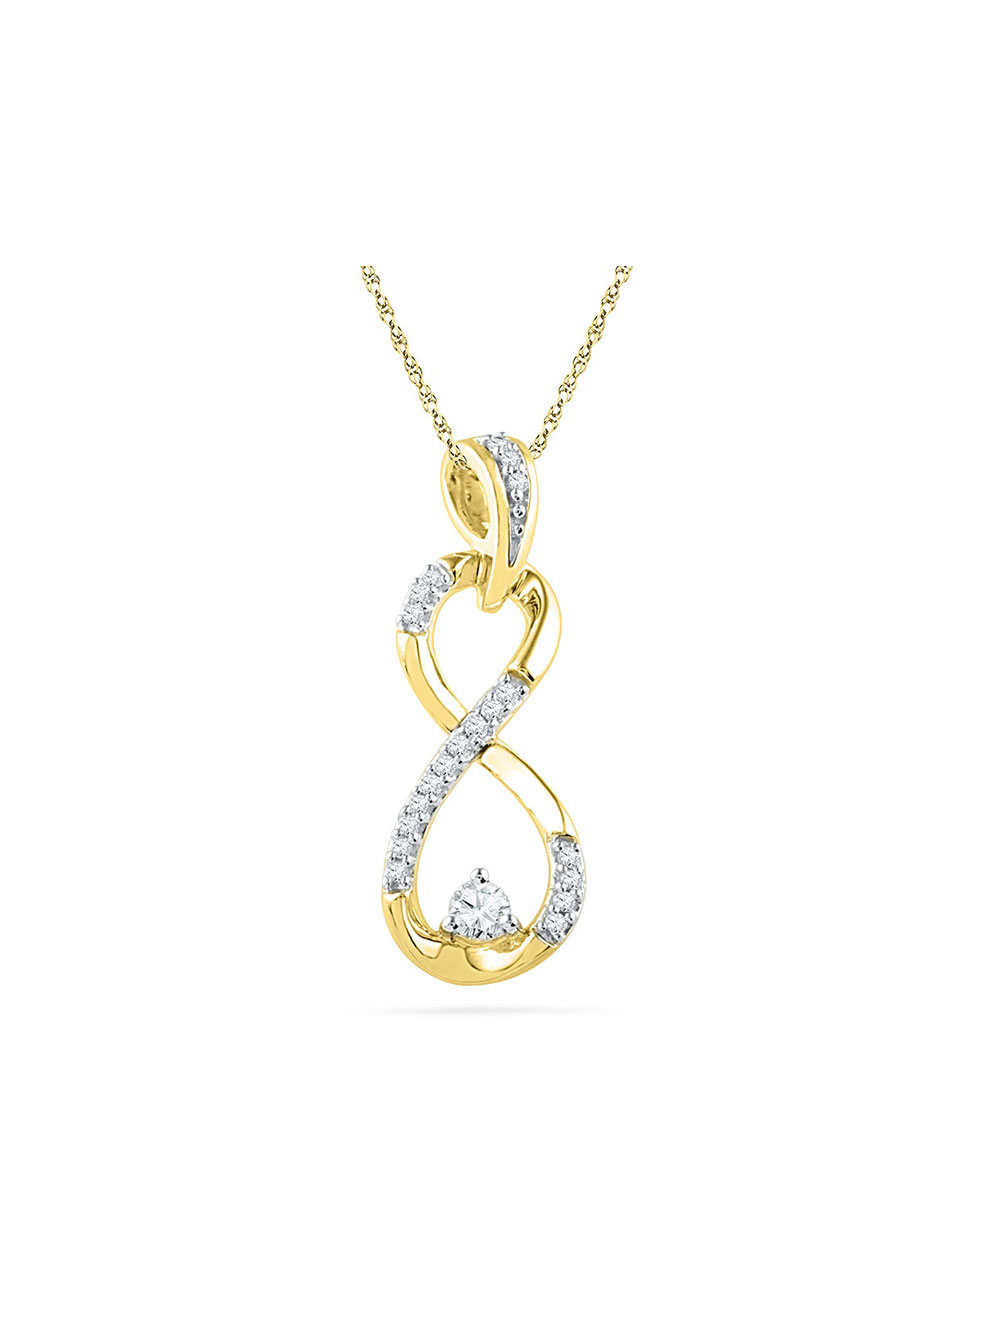 ALARRI 2.3 Carat 14K Solid White Gold All I Know Pink Topaz Diamond Necklace with 18 Inch Chain Length